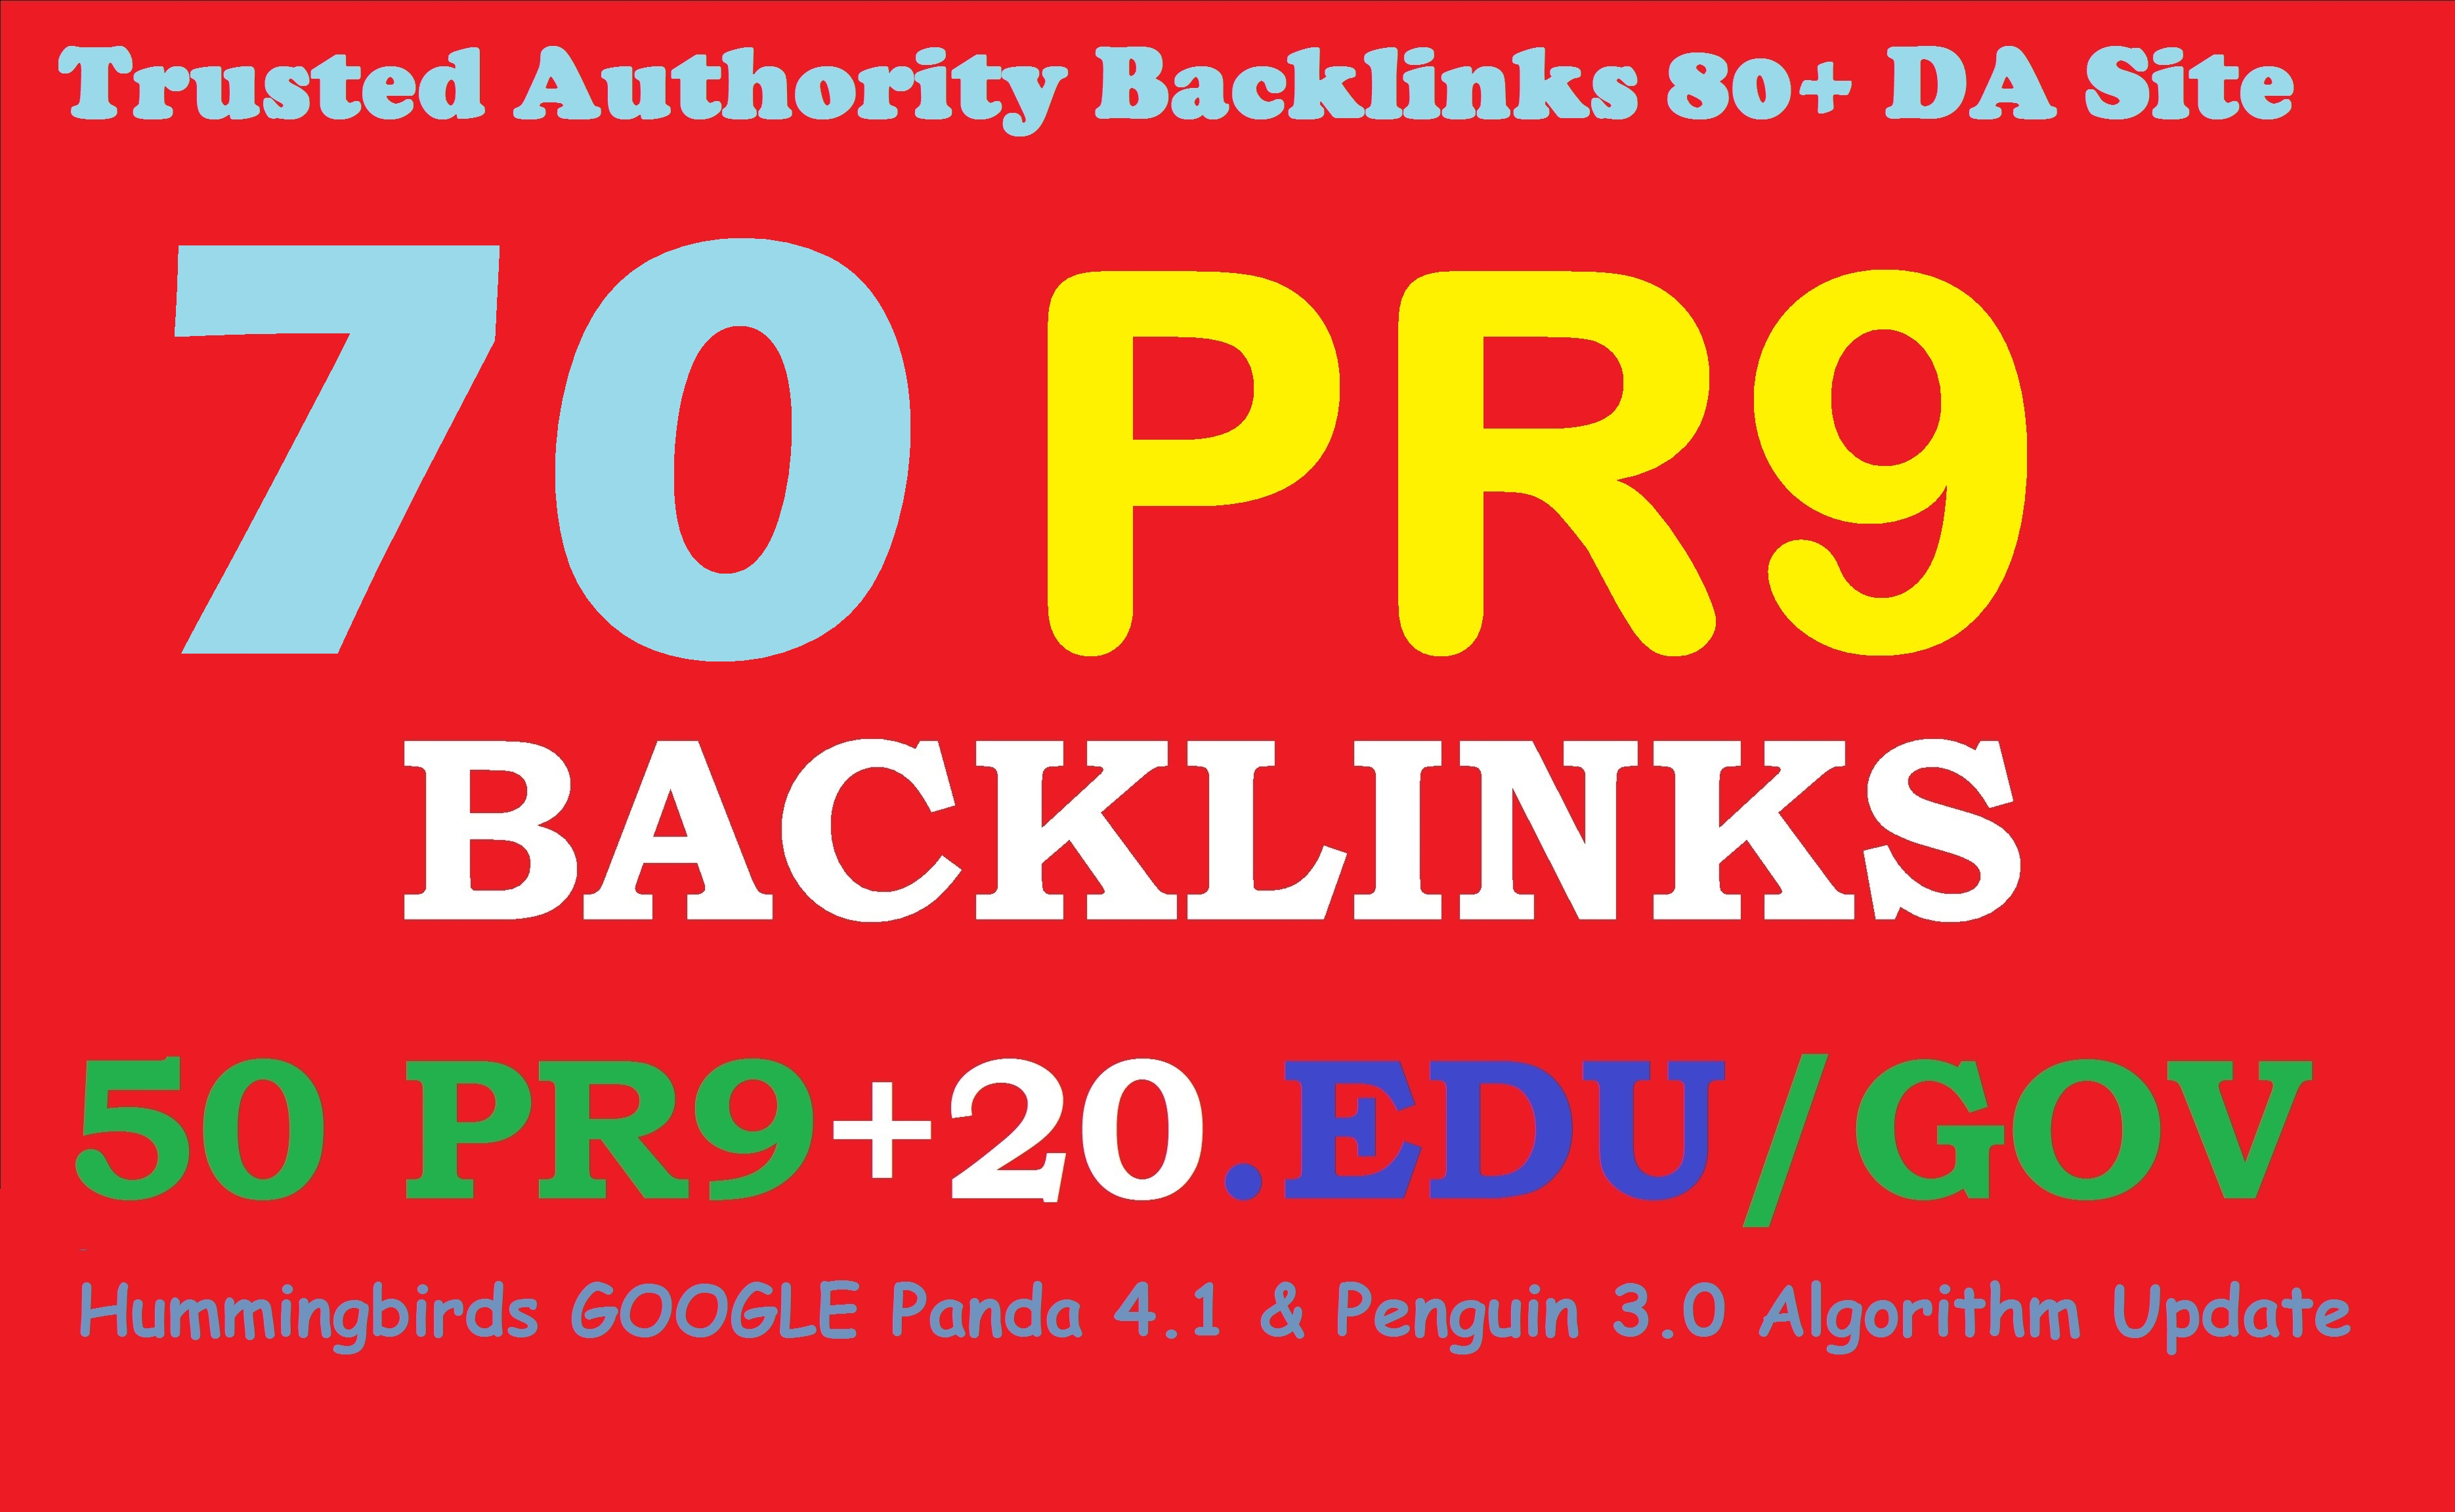 Exclusively 70 backlinks 50 PR9+20 EDU/GOV 80+DA Manual & Safe SEO For Boost Your Google Ranking